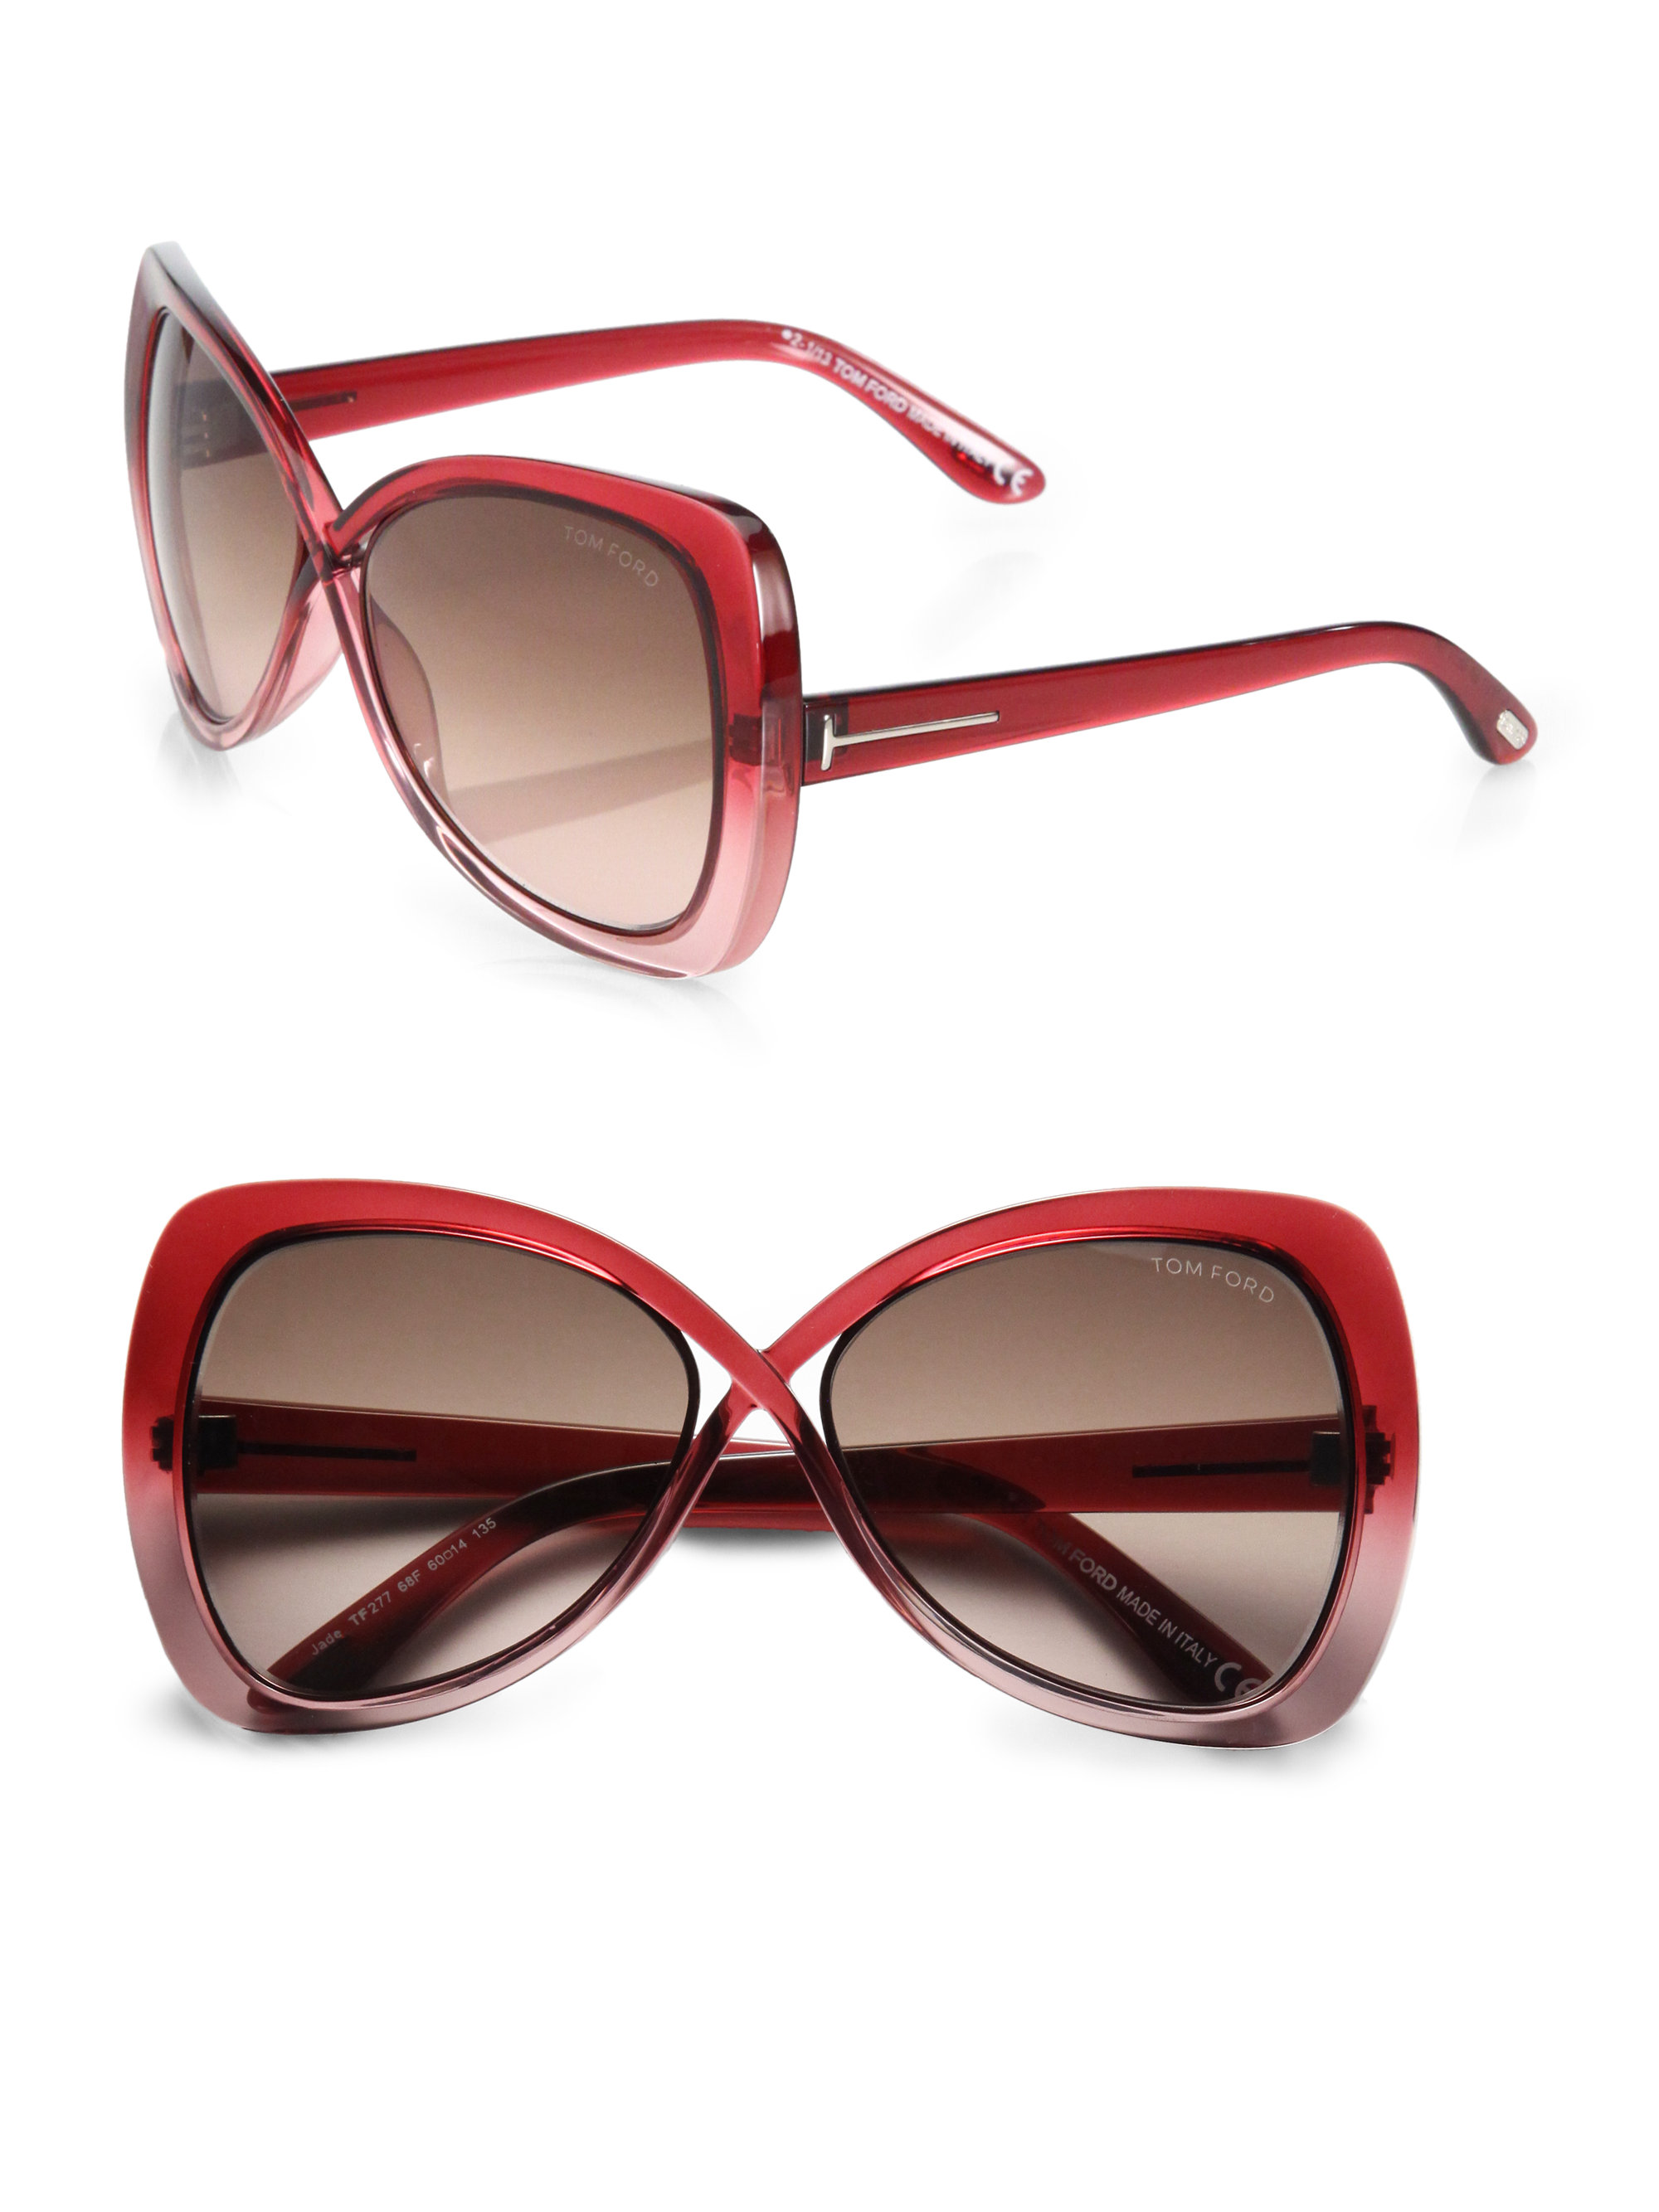 de8e042e4776 Lyst - Tom Ford Jade Crossover Injected Square Sunglasses in Red